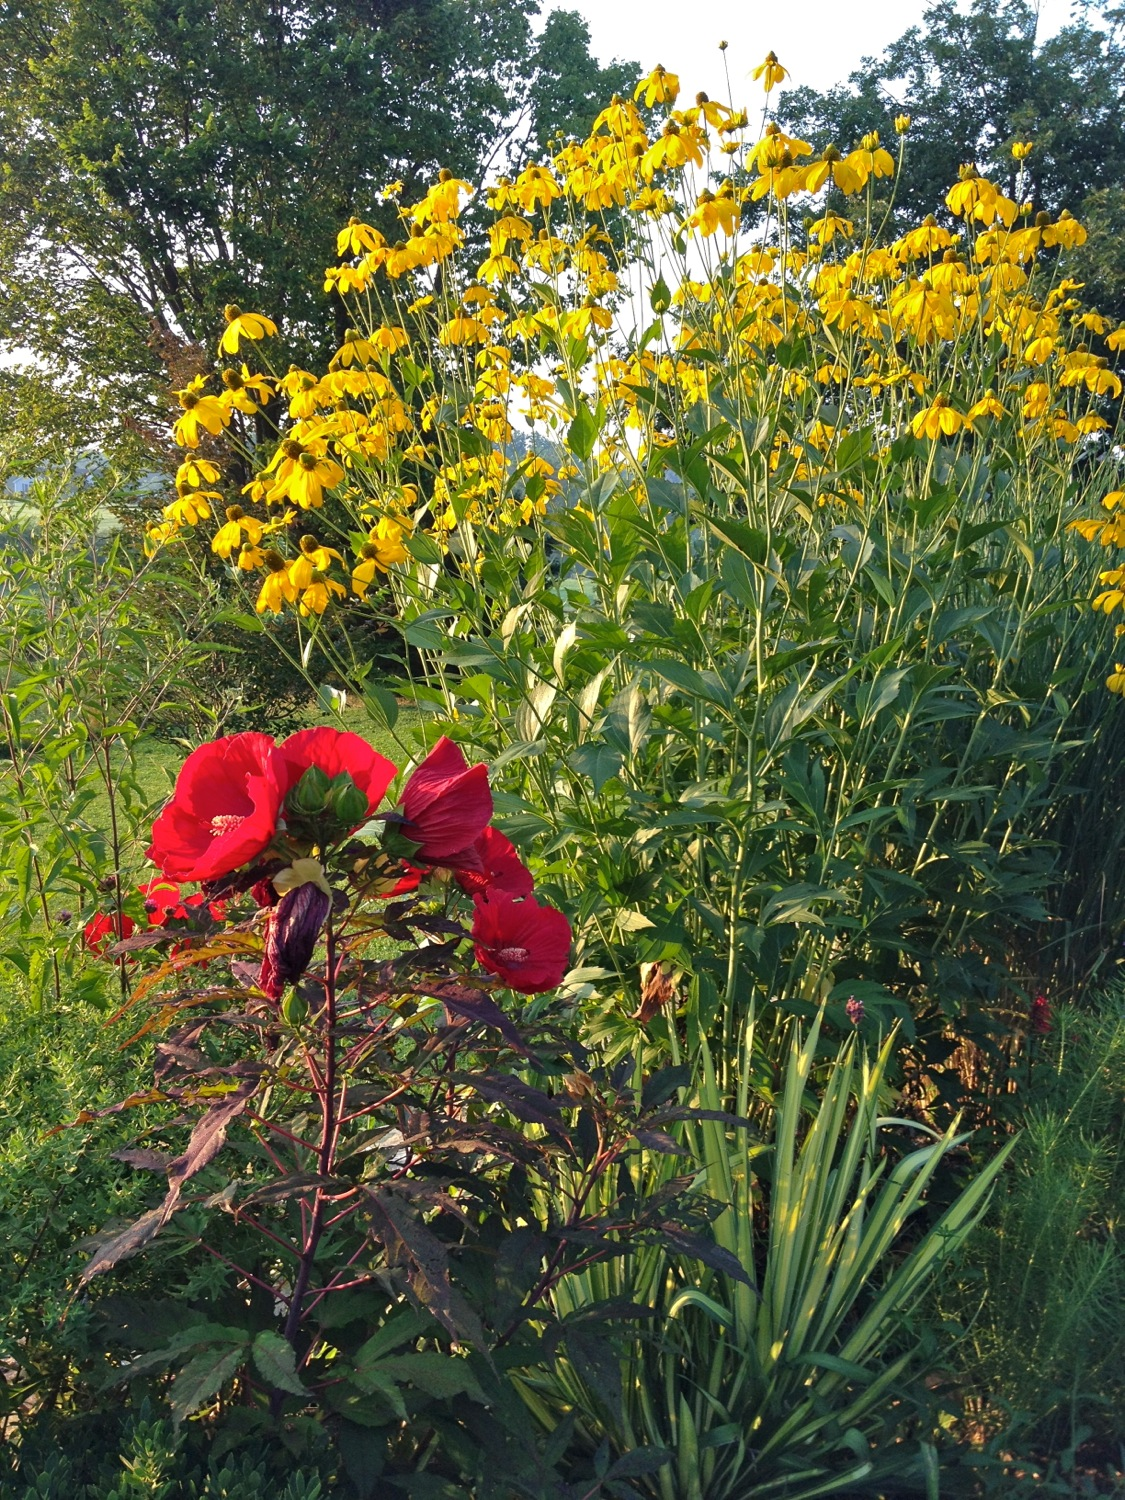 Hibiscus, Rudbeckia and Yucca July 2015